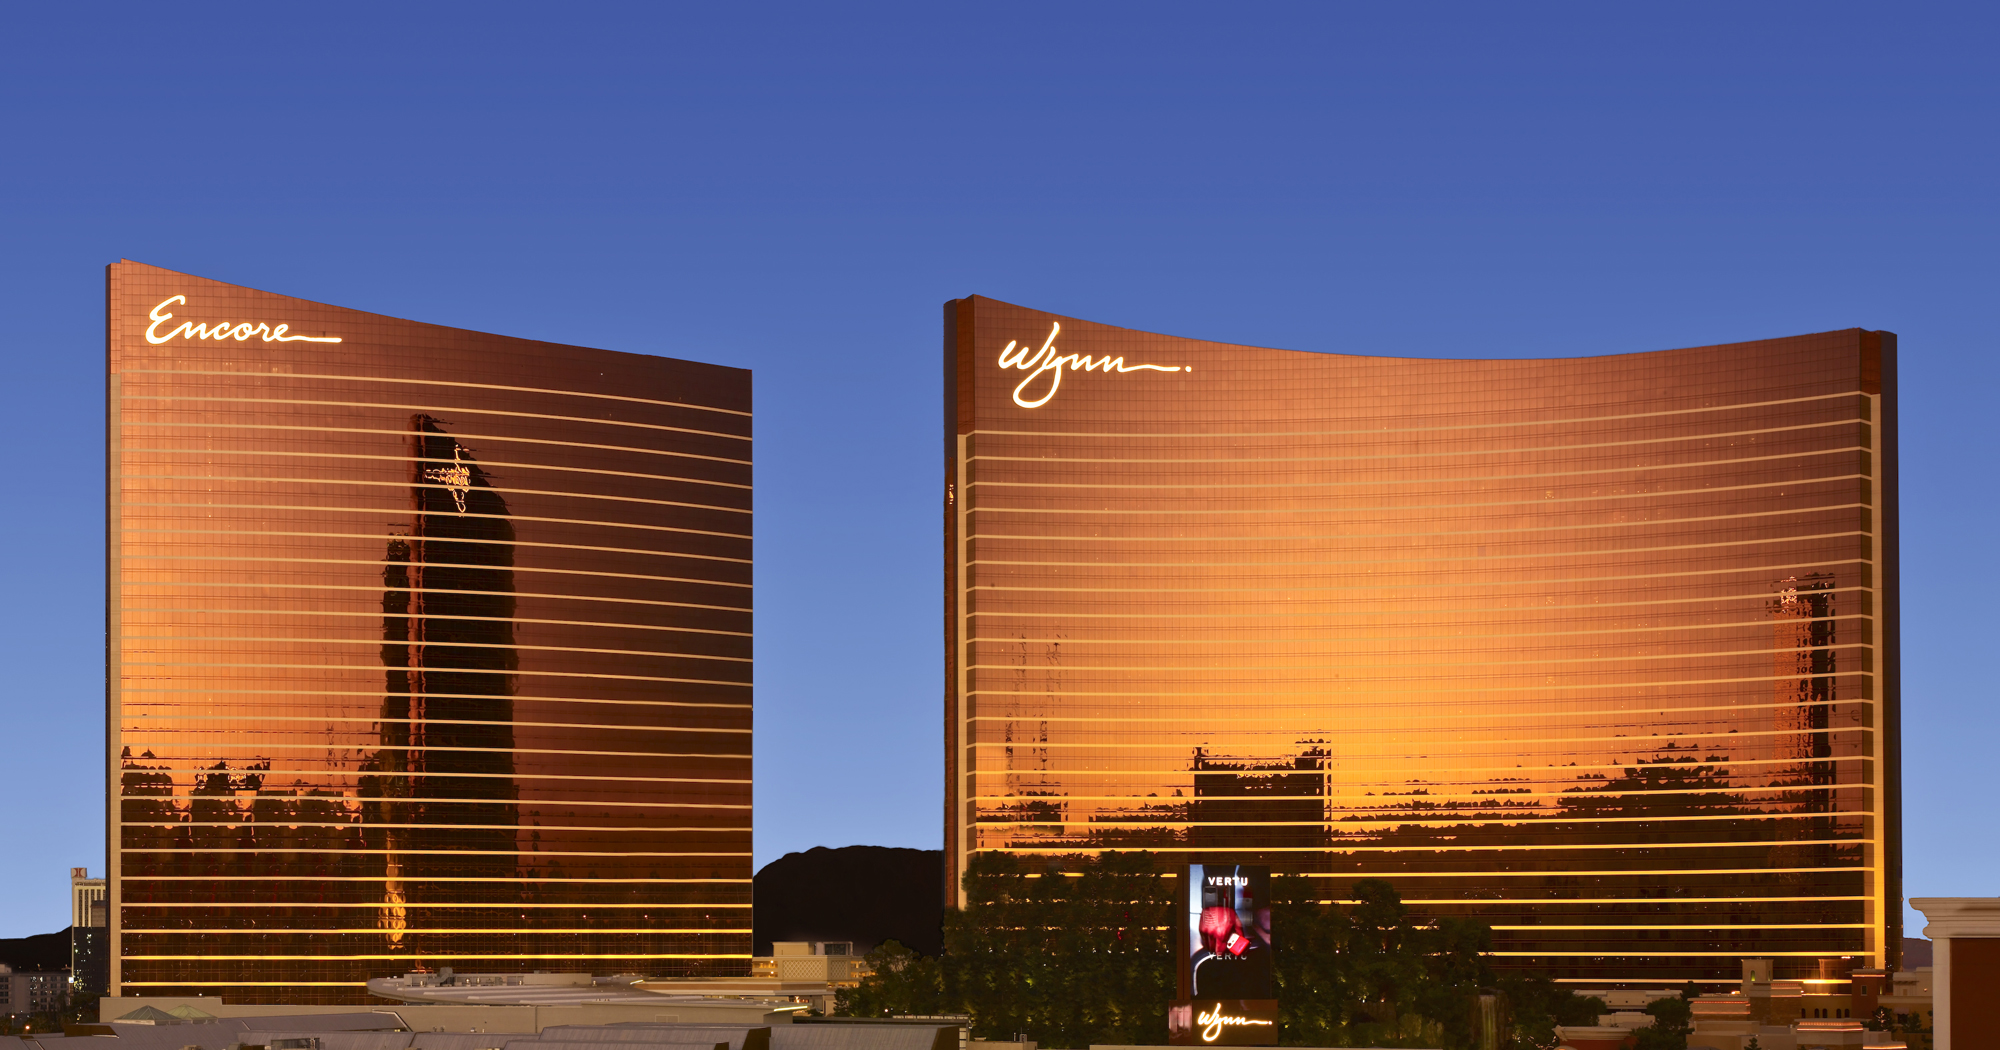 wynn resort Book wynn las vegas, las vegas on tripadvisor: see 19,255 traveller reviews, 9,470 photos, and cheap rates for wynn las vegas, ranked #5 of 269 hotels in las vegas and rated 45 of 5 at tripadvisor.